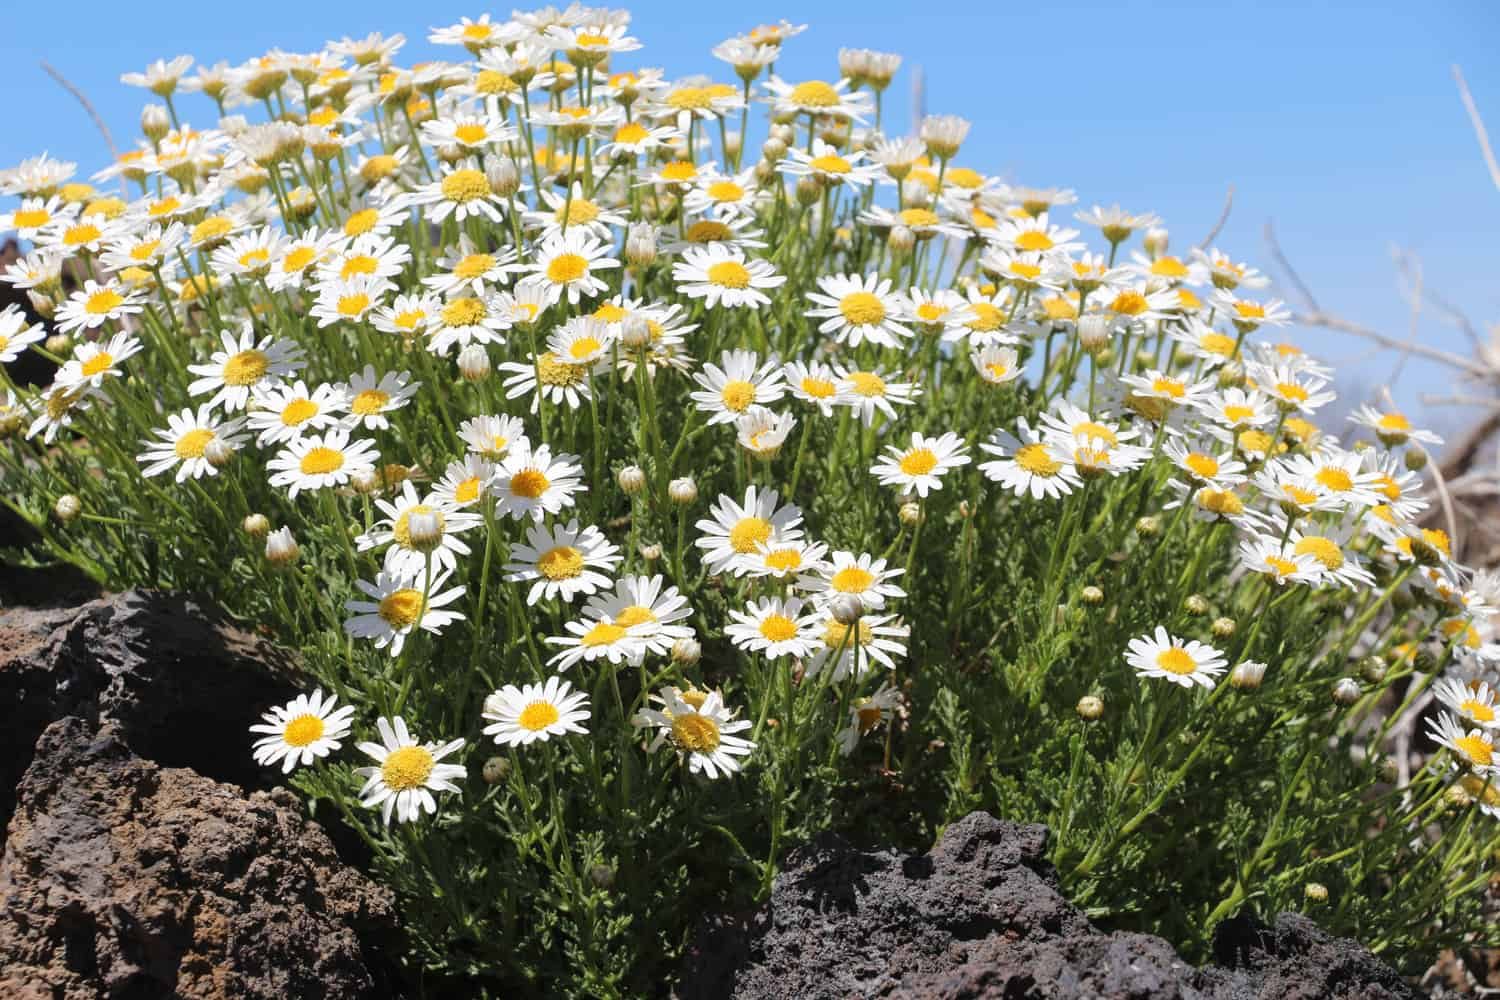 Teide Daisy in the lava beside the road | Giraffa